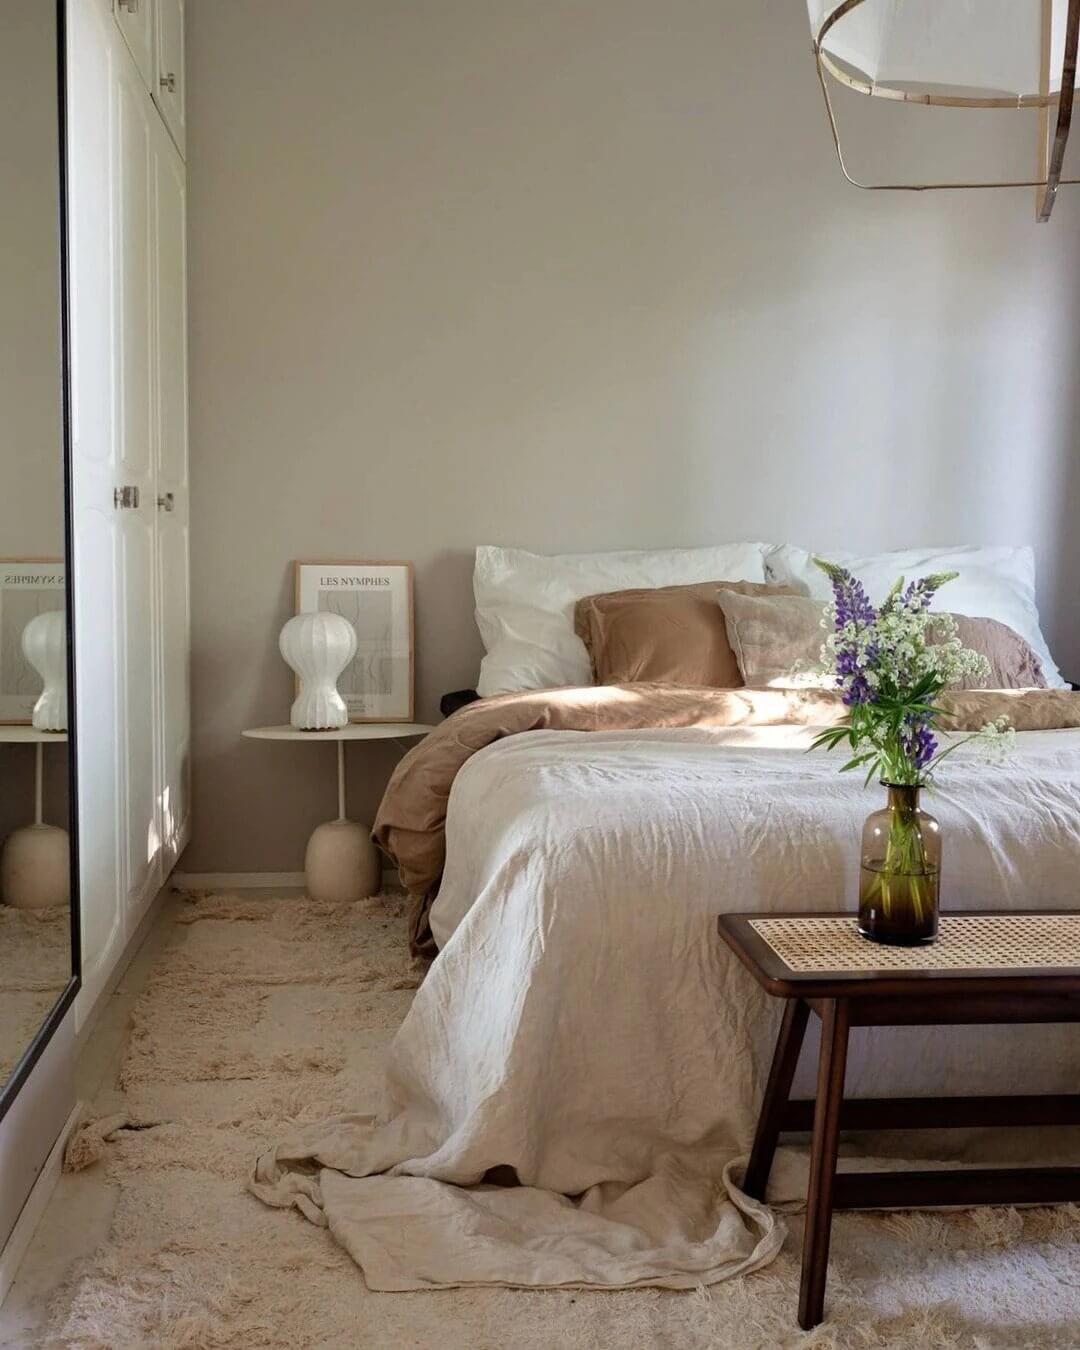 3. Stylish space with natural motives